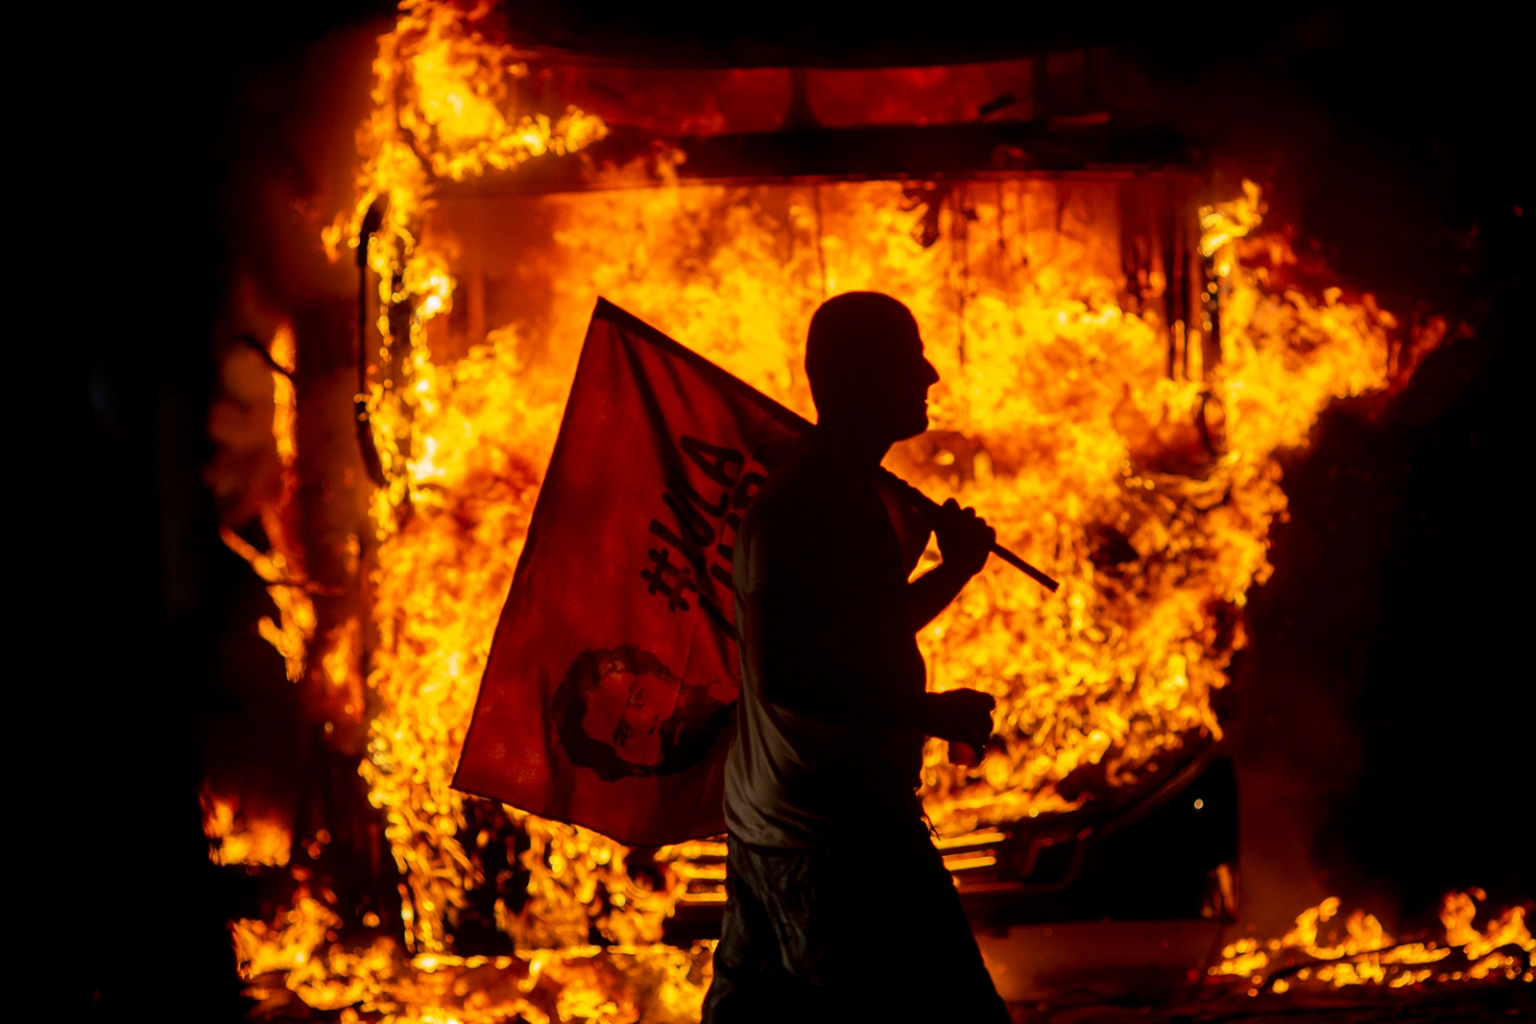 "A man holds a flag depicting former Brazilian President Luis Inacio Lula da Silva past a bus in flames during a protest organized by the National Students Union in Rio de Janeiro on May 15. Students and teachers from hundreds of universities and colleges began a nationwide demonstration in ""defense of education following a raft of budget cuts announced by President Jair Bolsonaro's government. MAURO PIMENTEL/AFP/Getty Images"